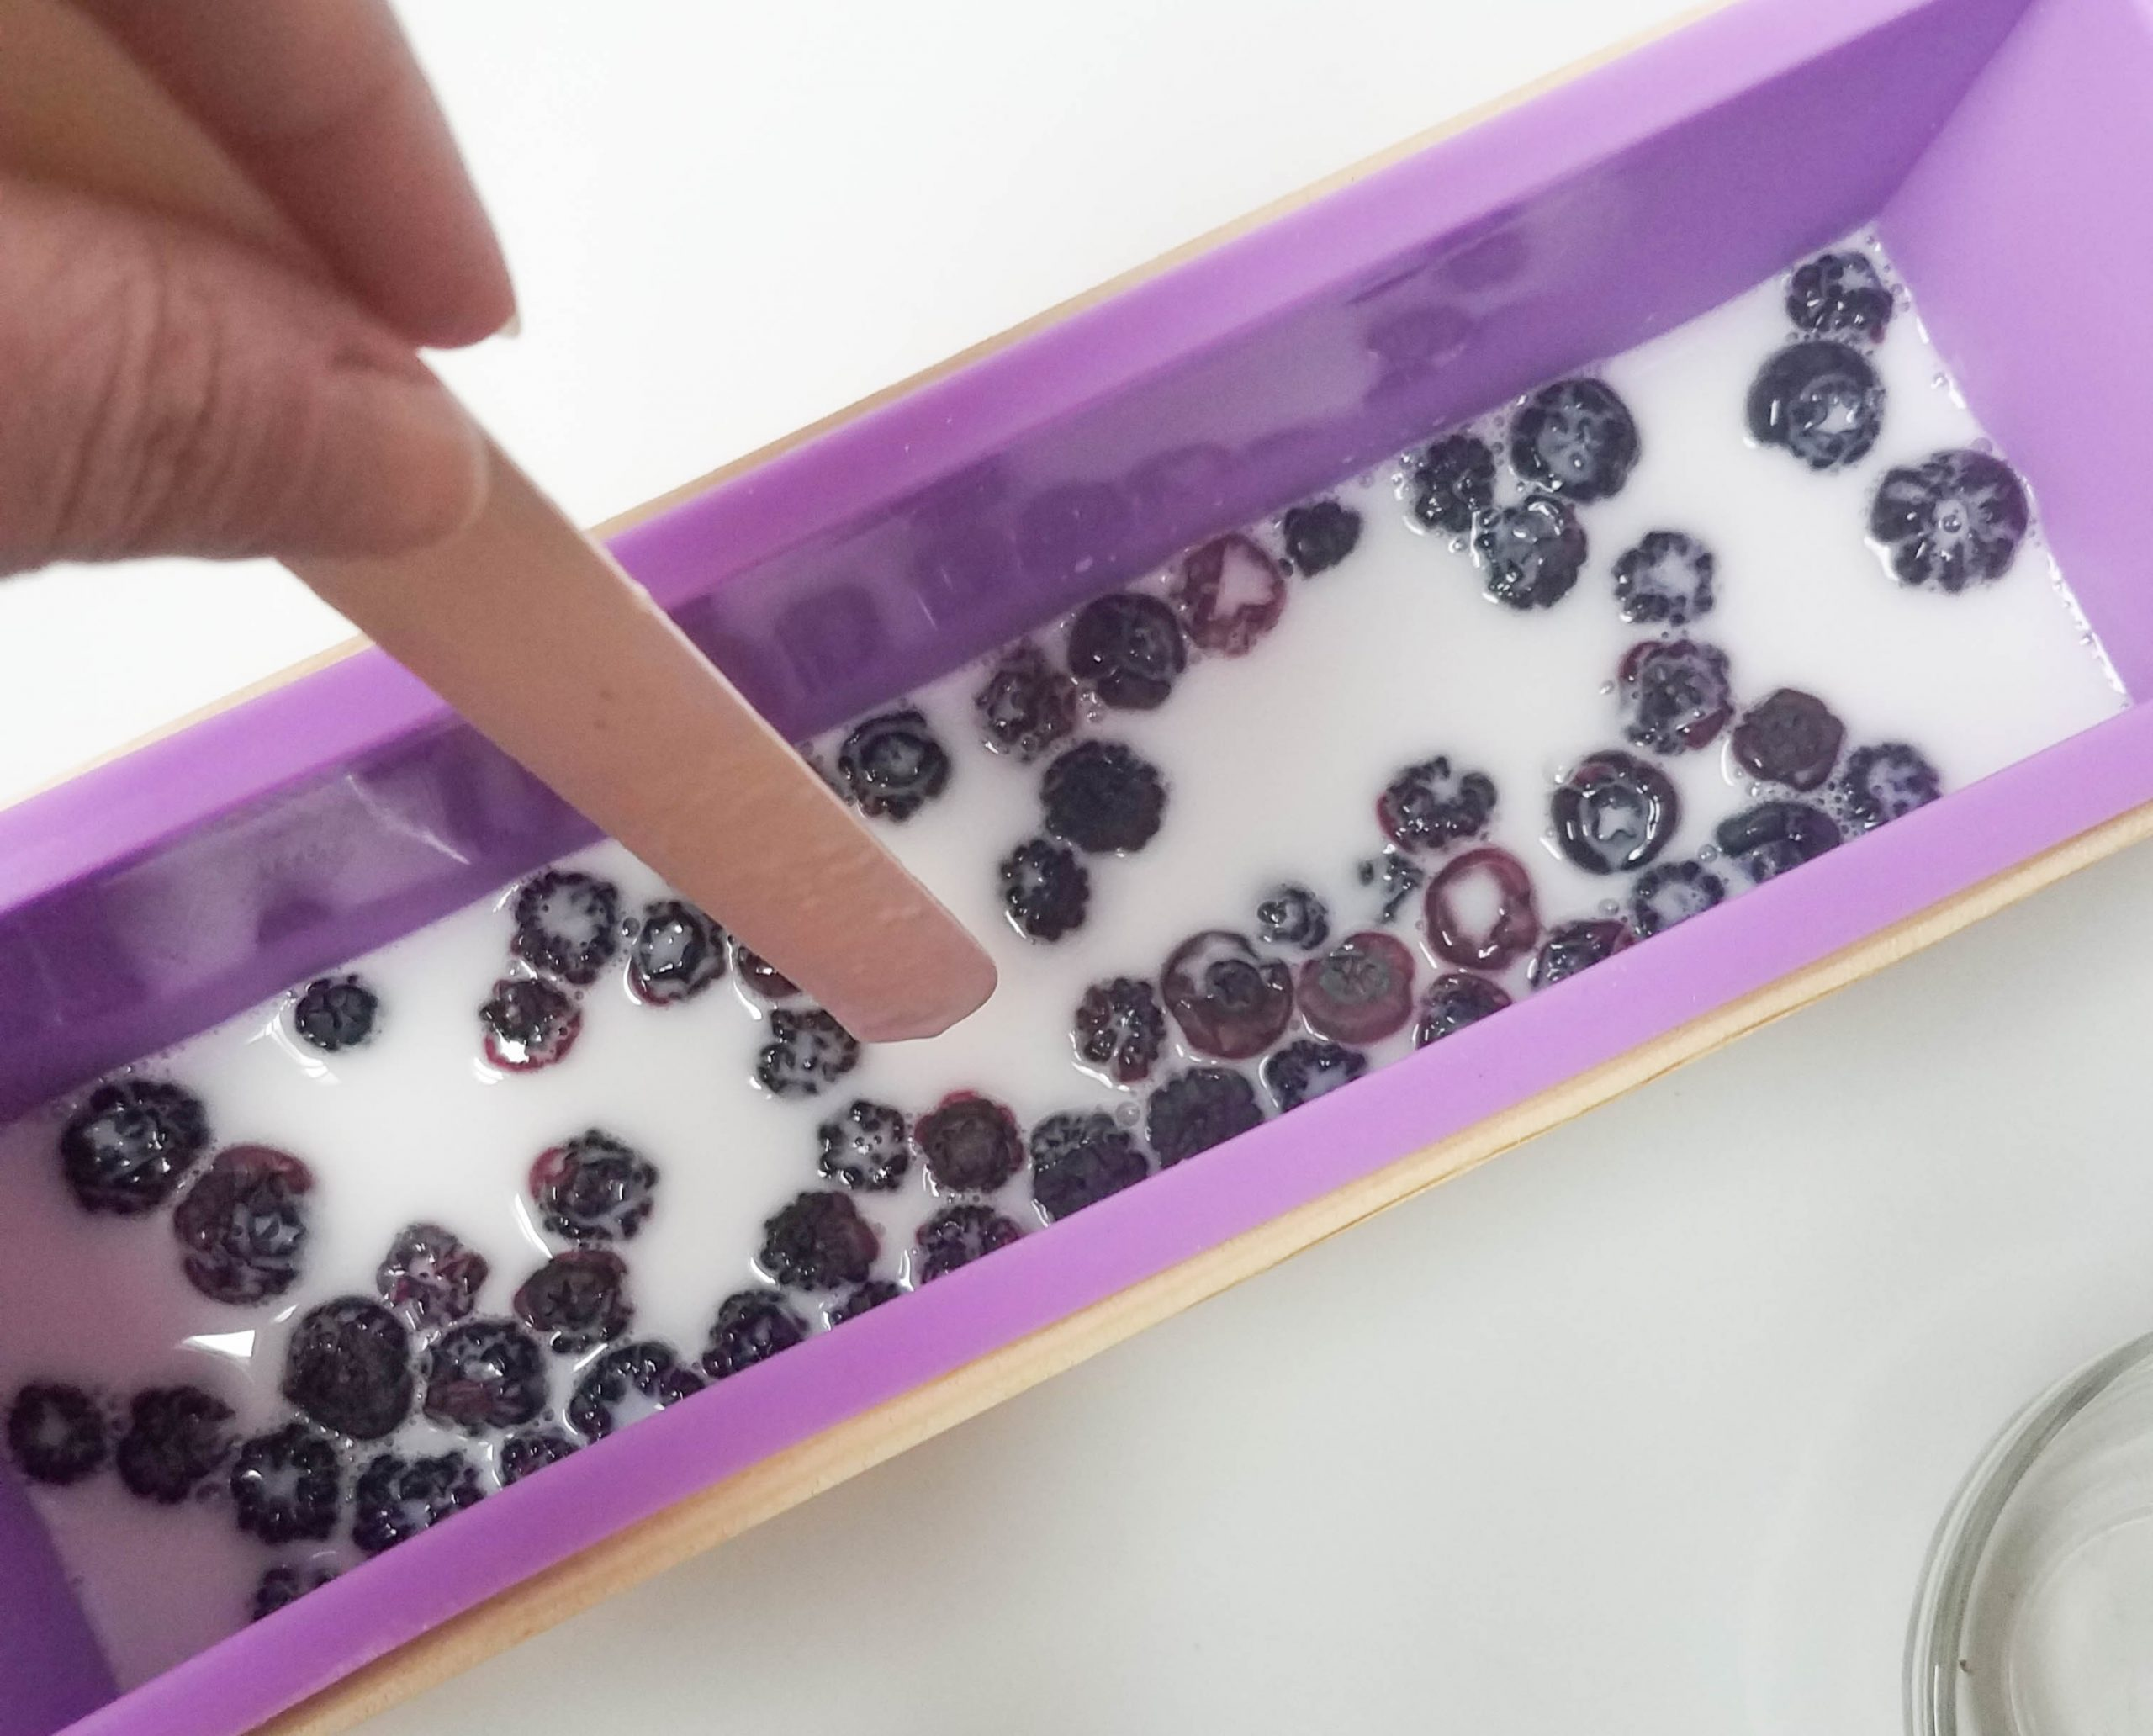 distribute the blueberries